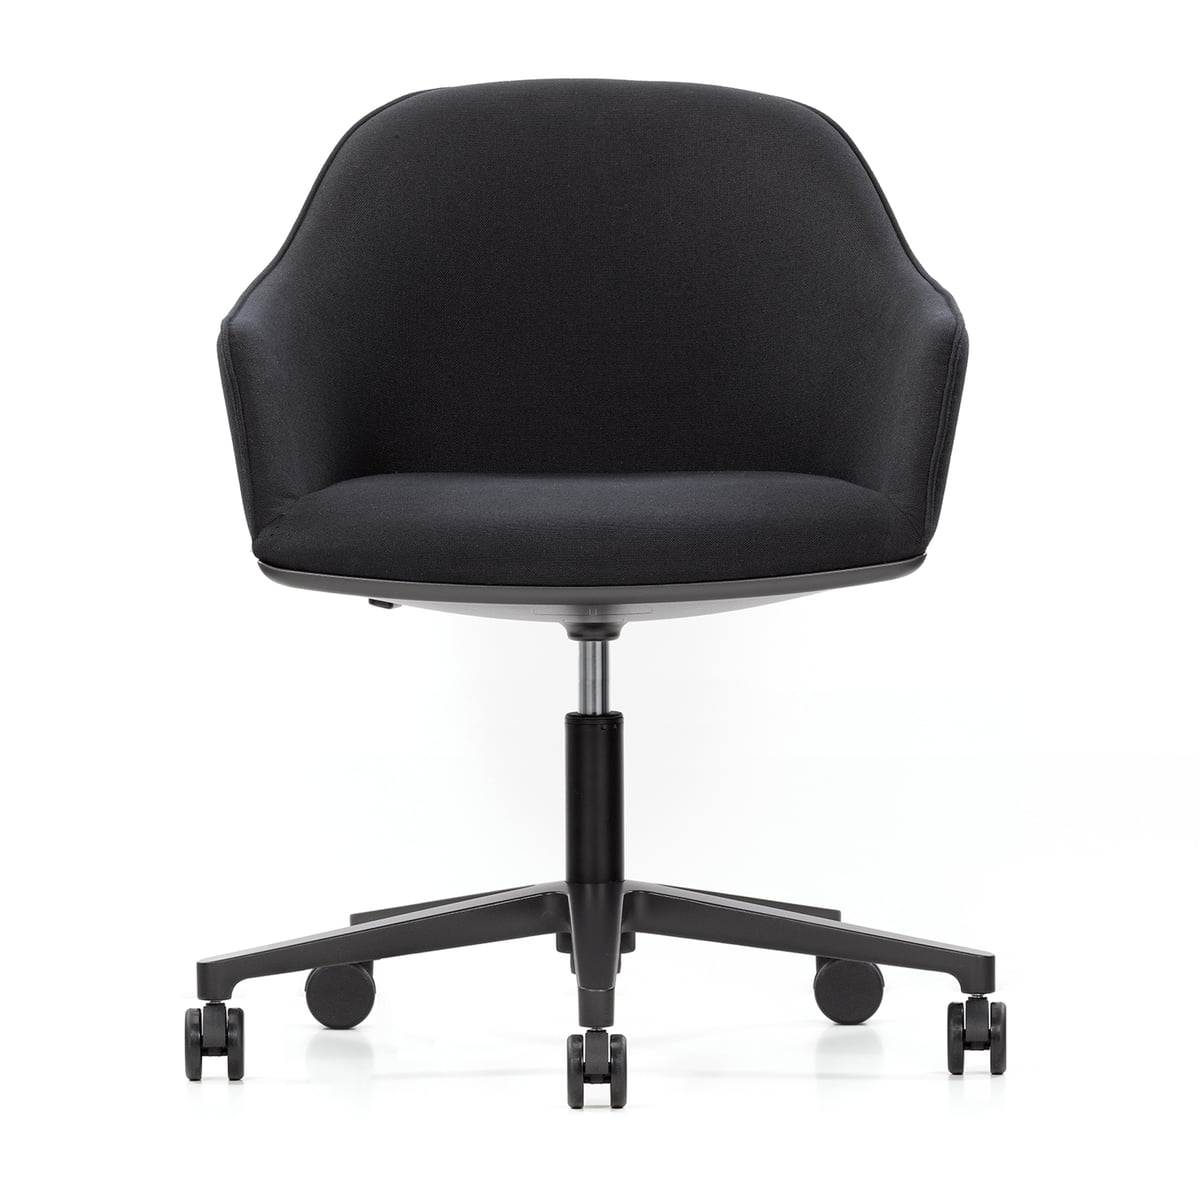 Buy the vitra softshell chair with wheels for Vitra chair nachbau